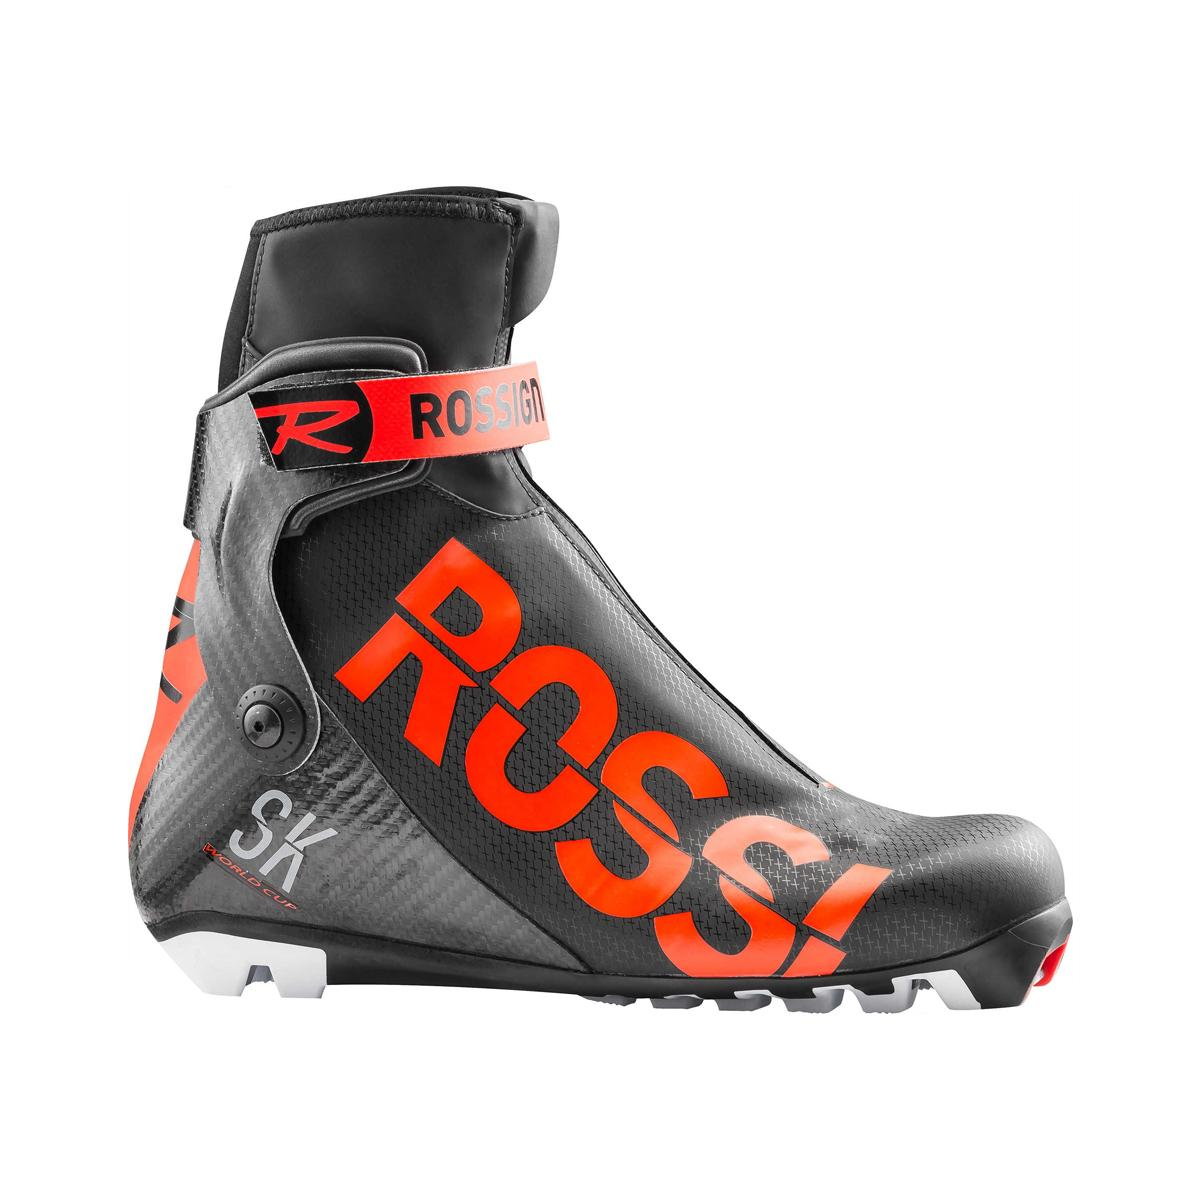 Rossignol X-Ium WC Skate Boot in Black and Red